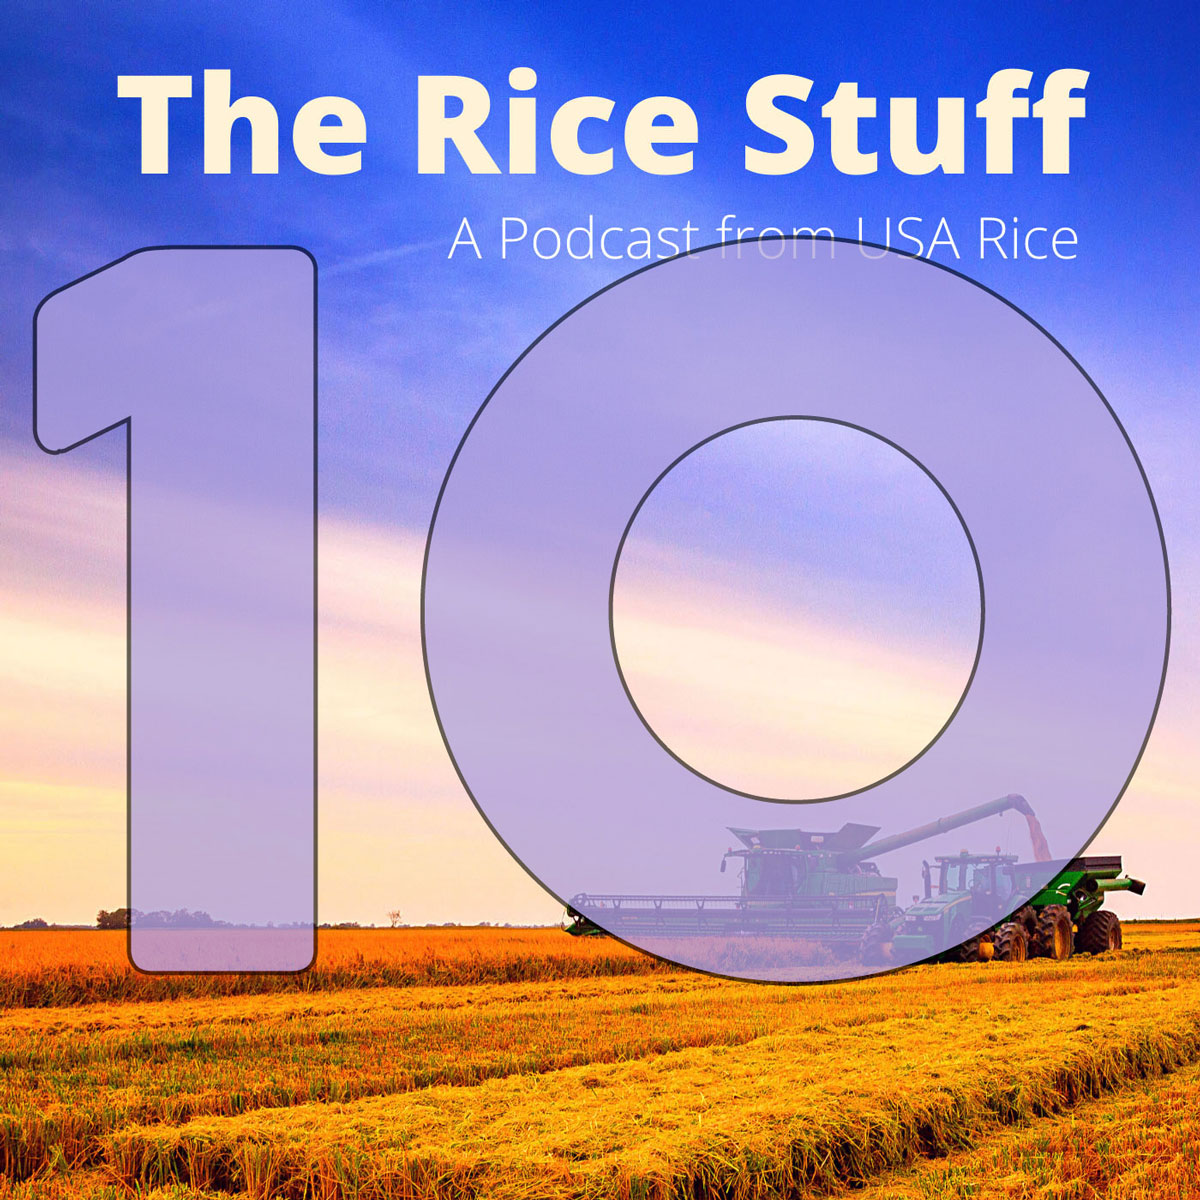 Number 10 superimposed over photo of combine and grain cart in mature rice field